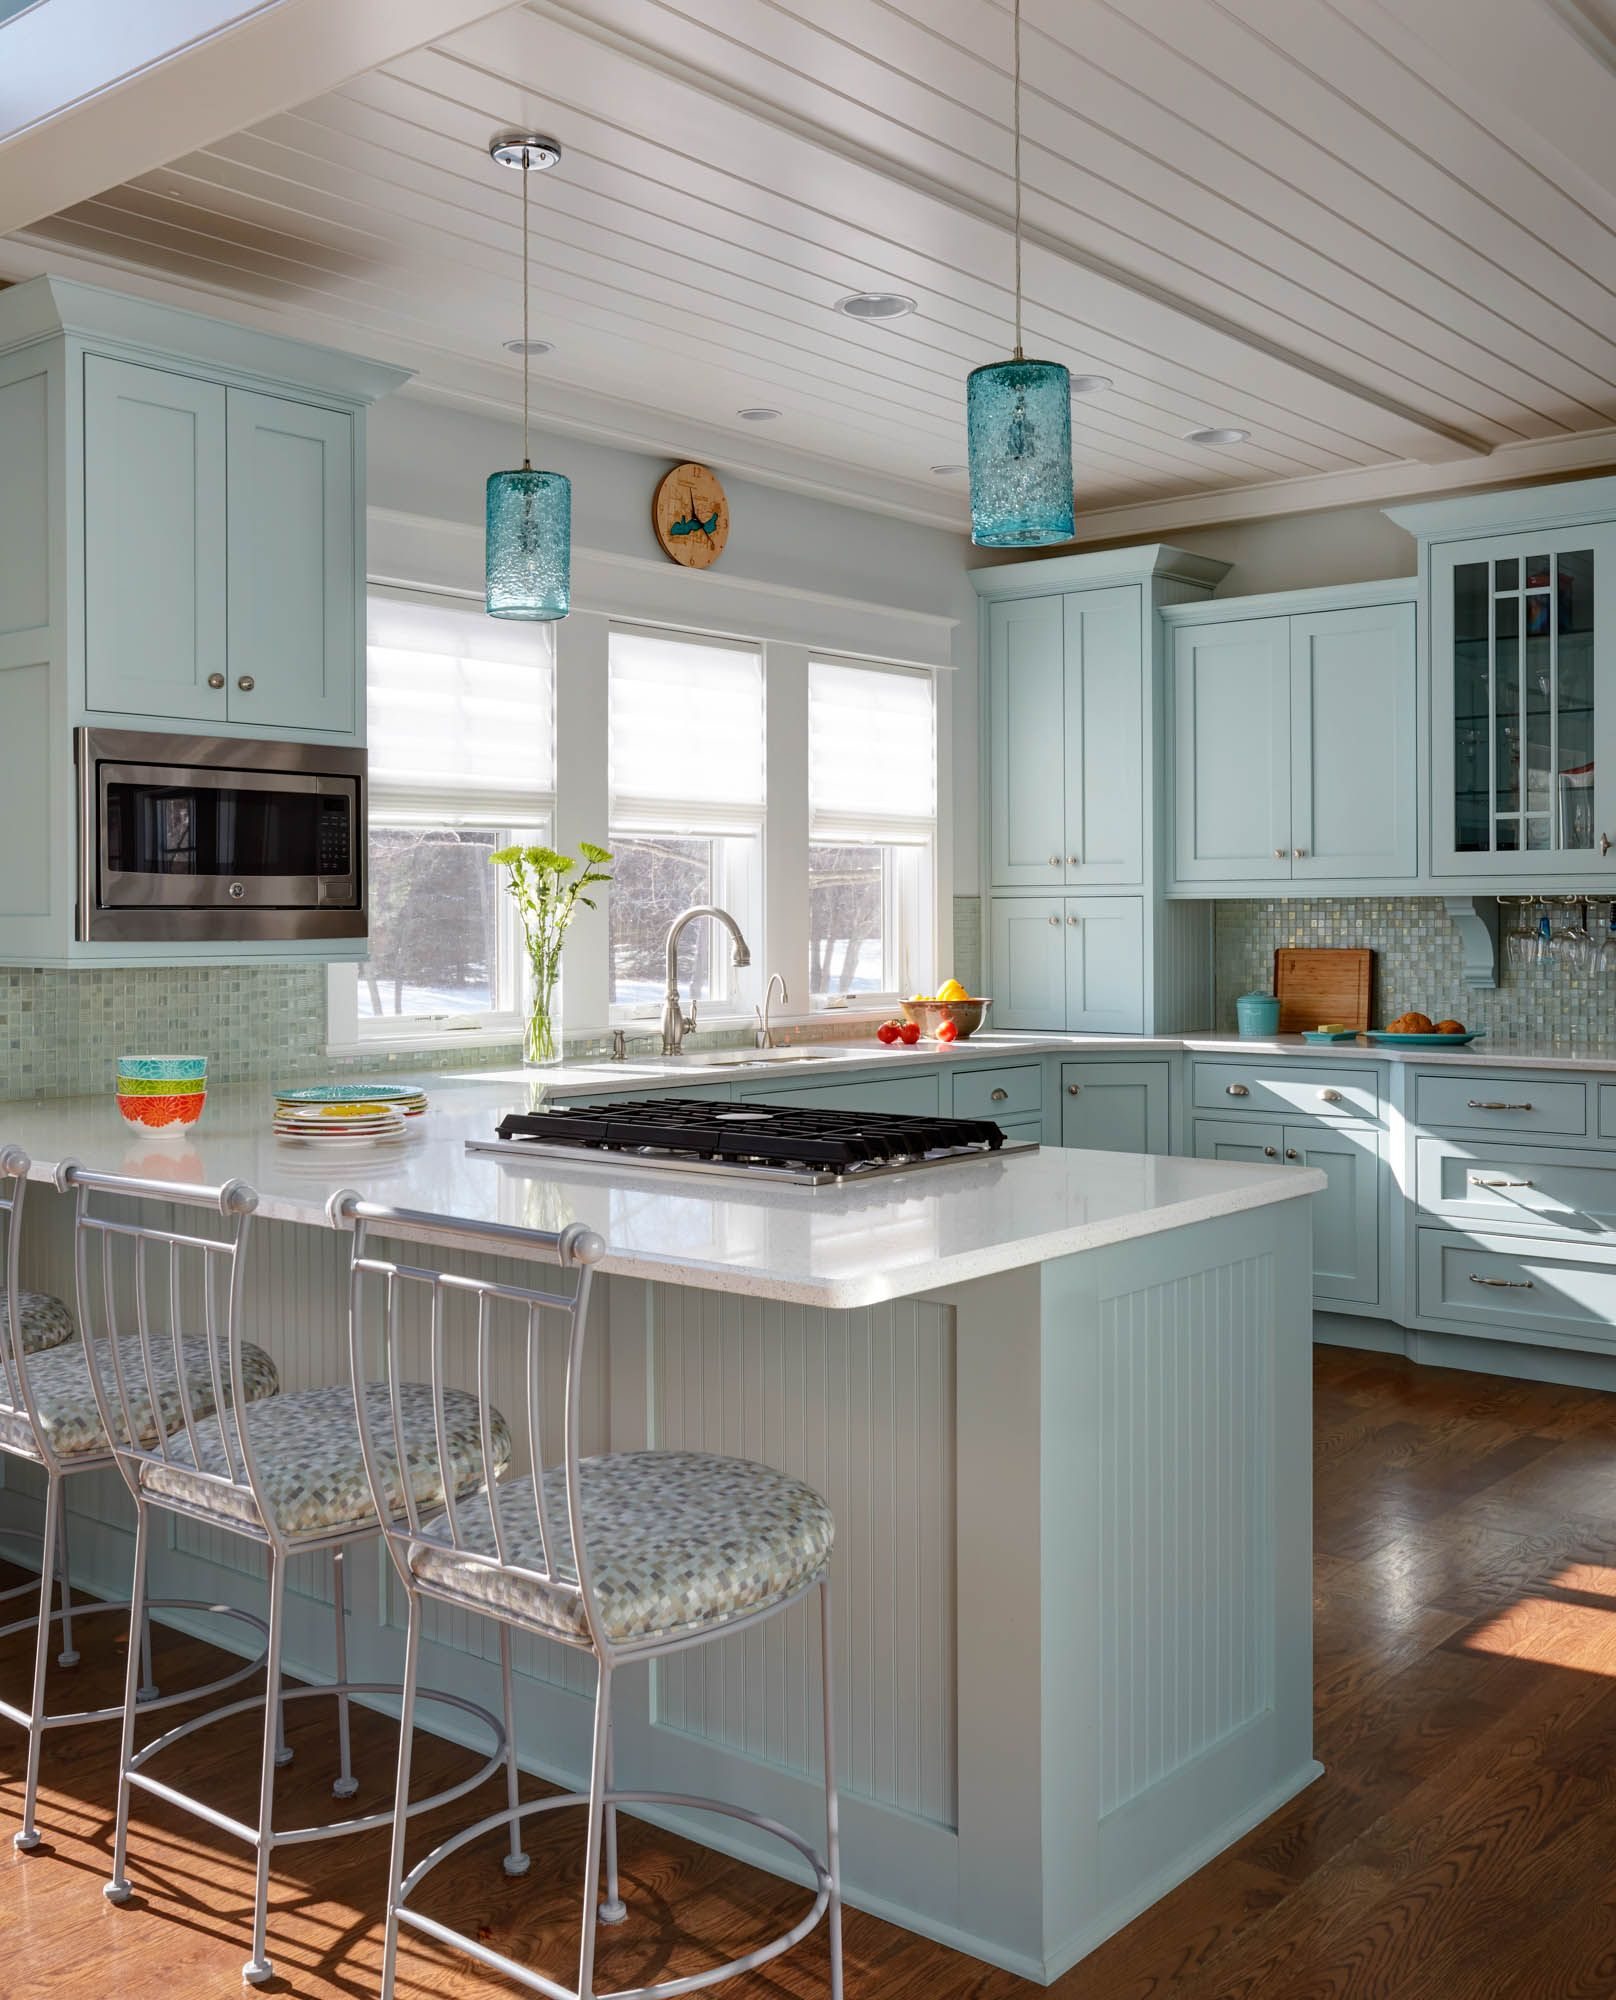 Hgtv Painting Kitchen Cabinets: Painted Kitchen Cabinets In Sherwin Williams Tidewater By